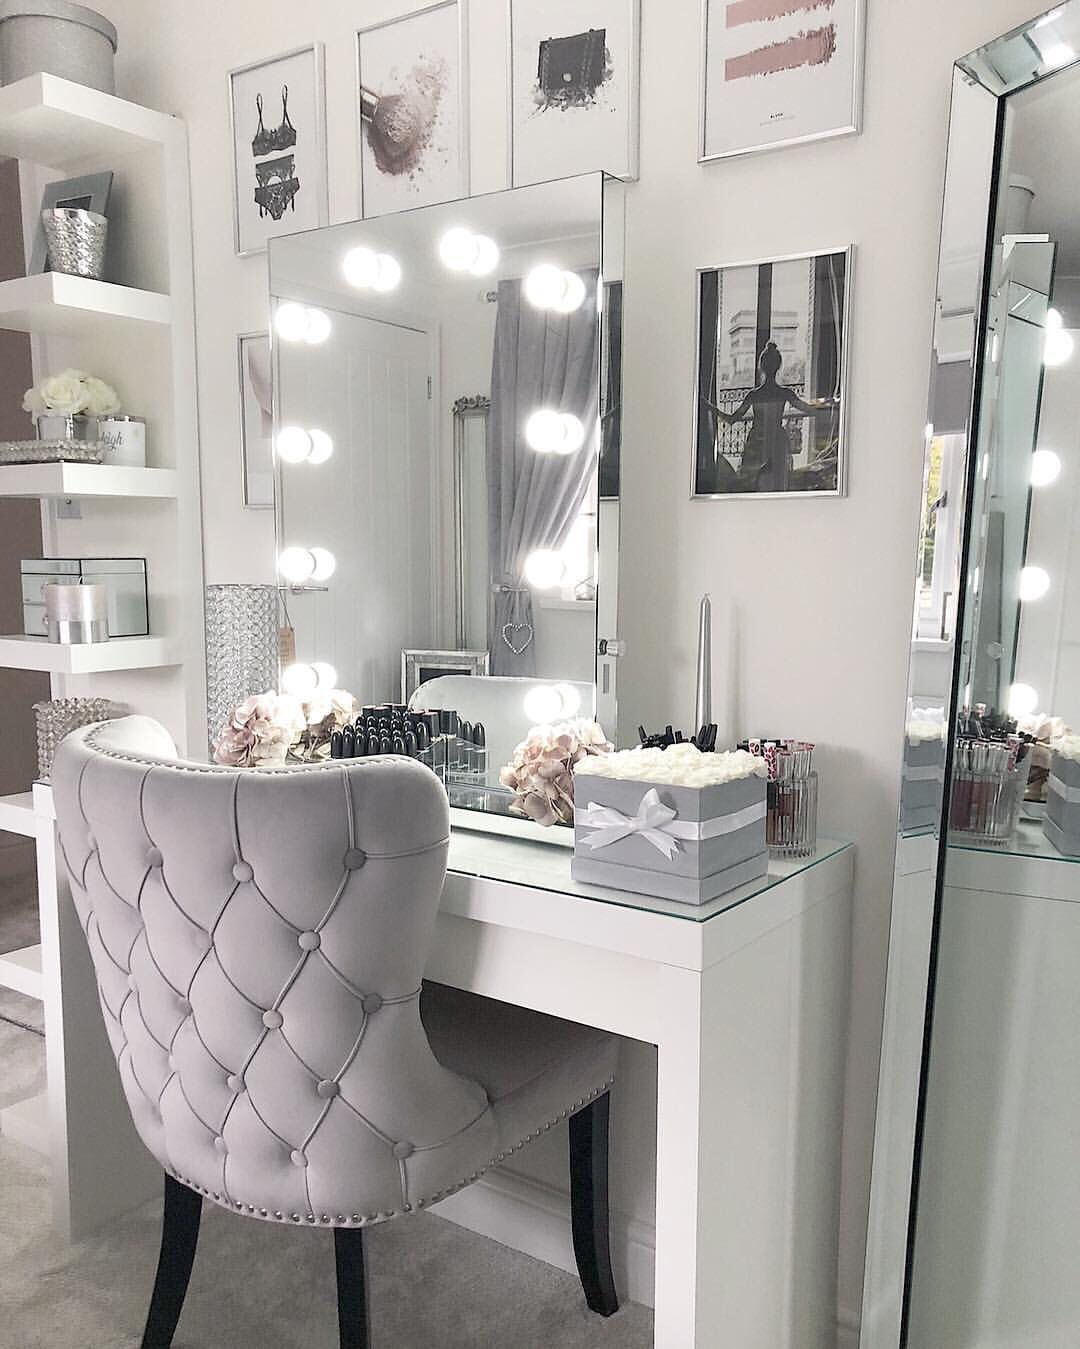 20 Vanity Mirror With Lights Ideas Diy Or Buy For Amour Makeup Room Apartment Decor Interior Home Decor